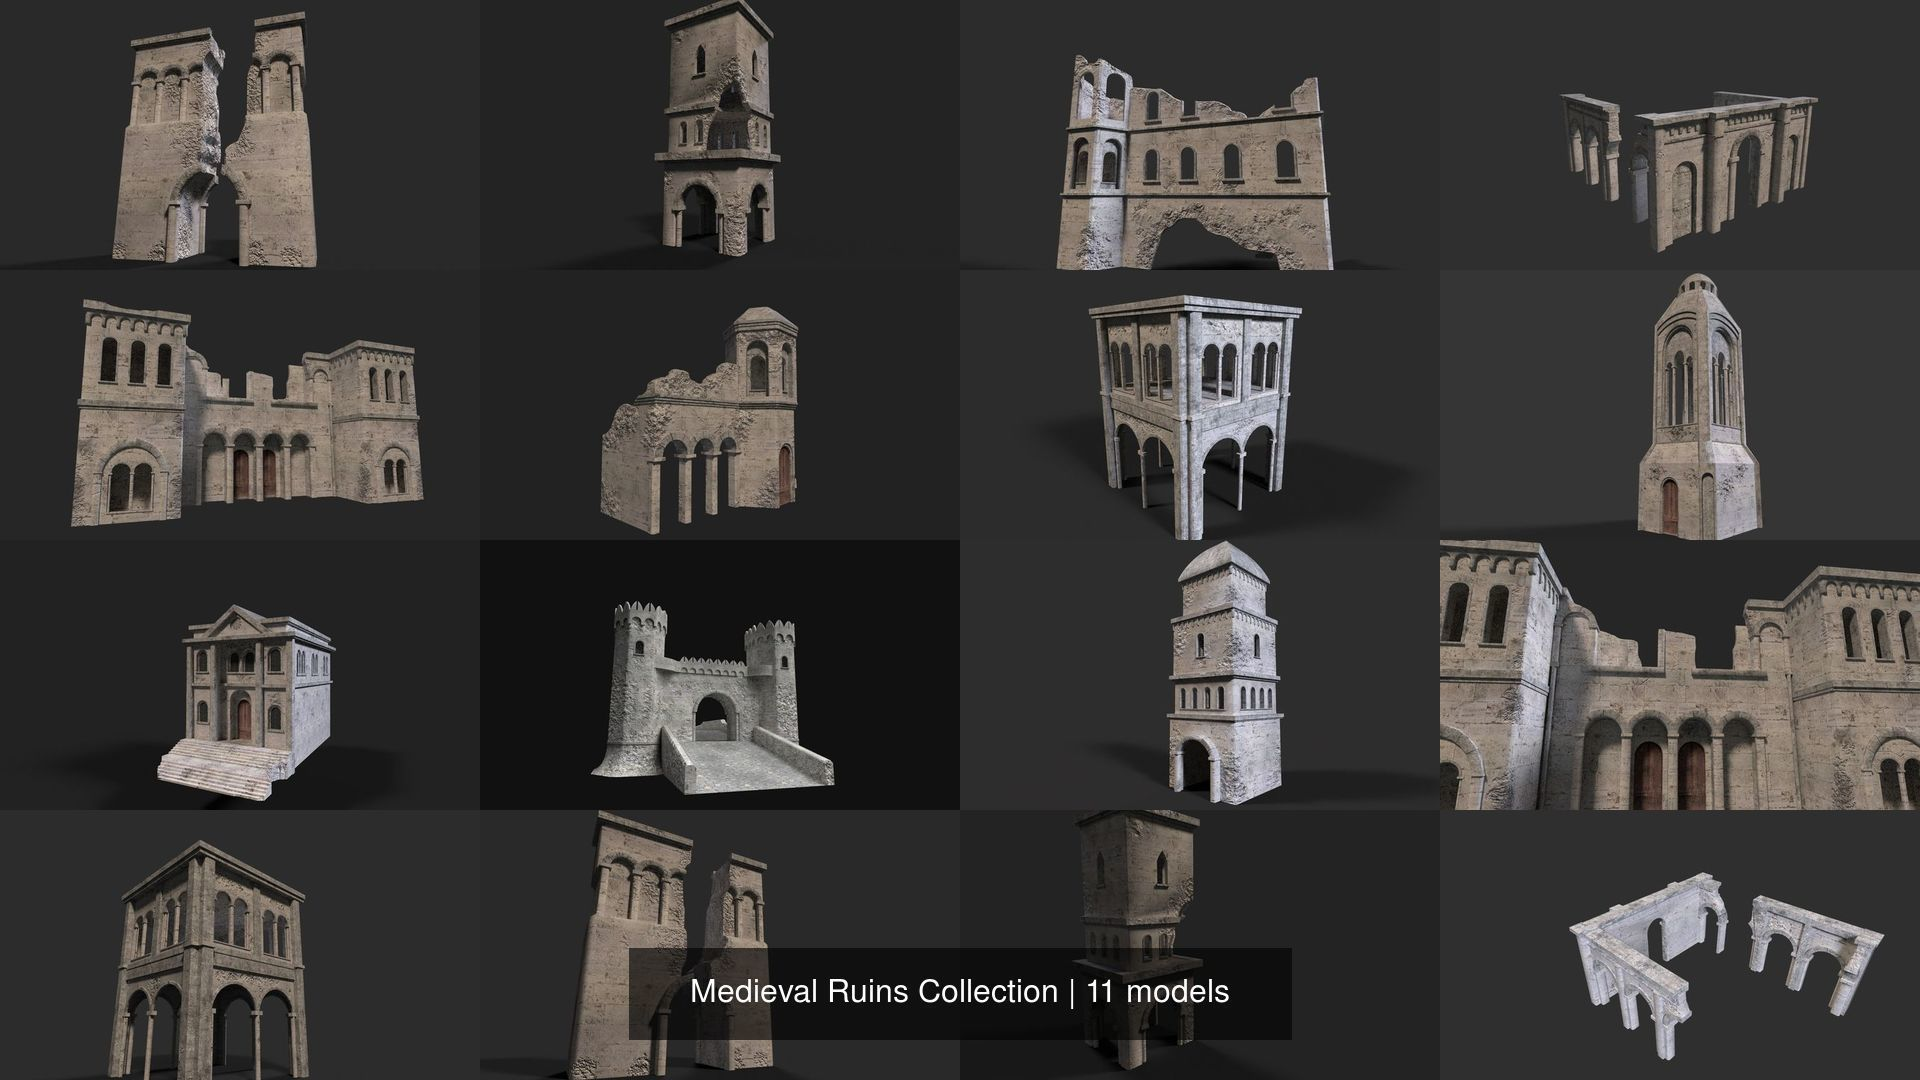 Medieval Ruins Collection